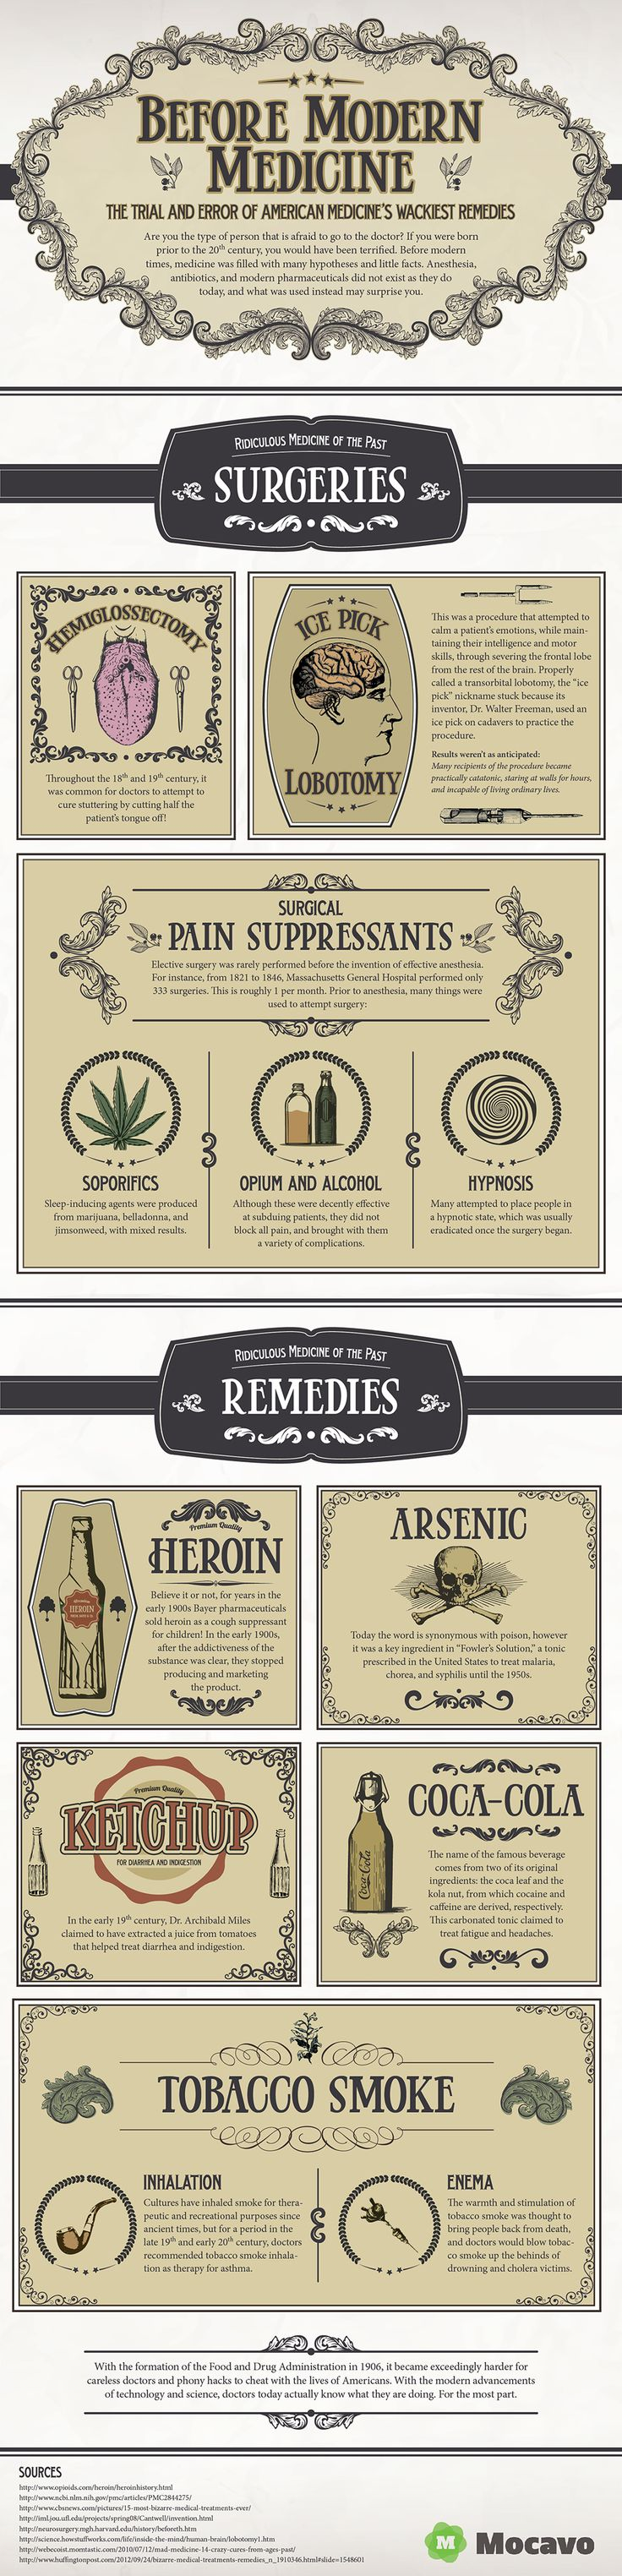 A Visual History of Preposterous Medicine Learn how to make money online  http://mapforsuccess.weebly.com/homelondie.html